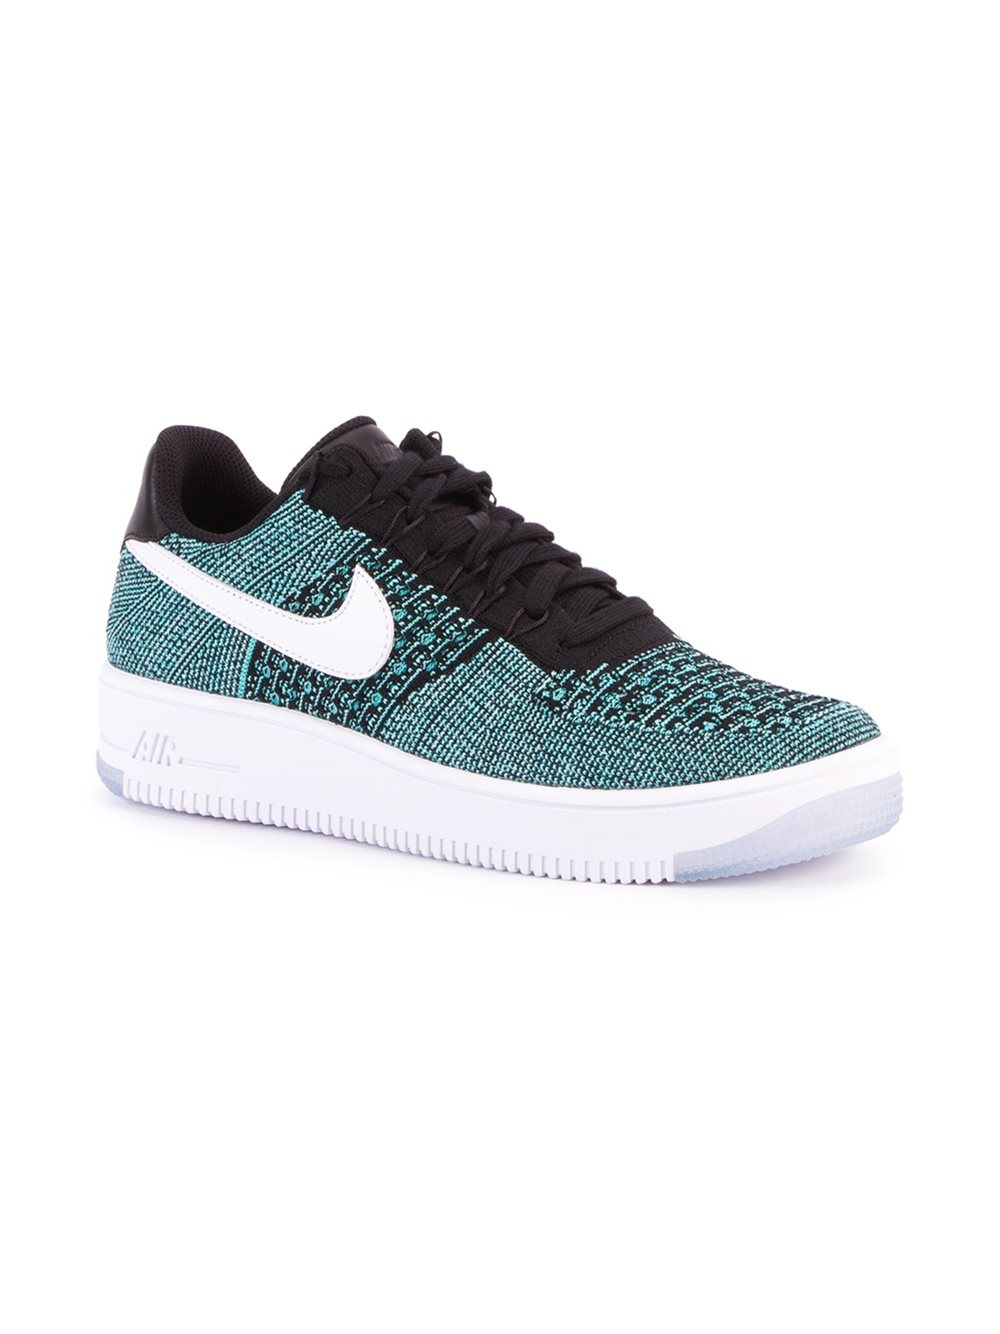 nike 39 air force 1 ultra flyknit low 39 sneakers in green for. Black Bedroom Furniture Sets. Home Design Ideas